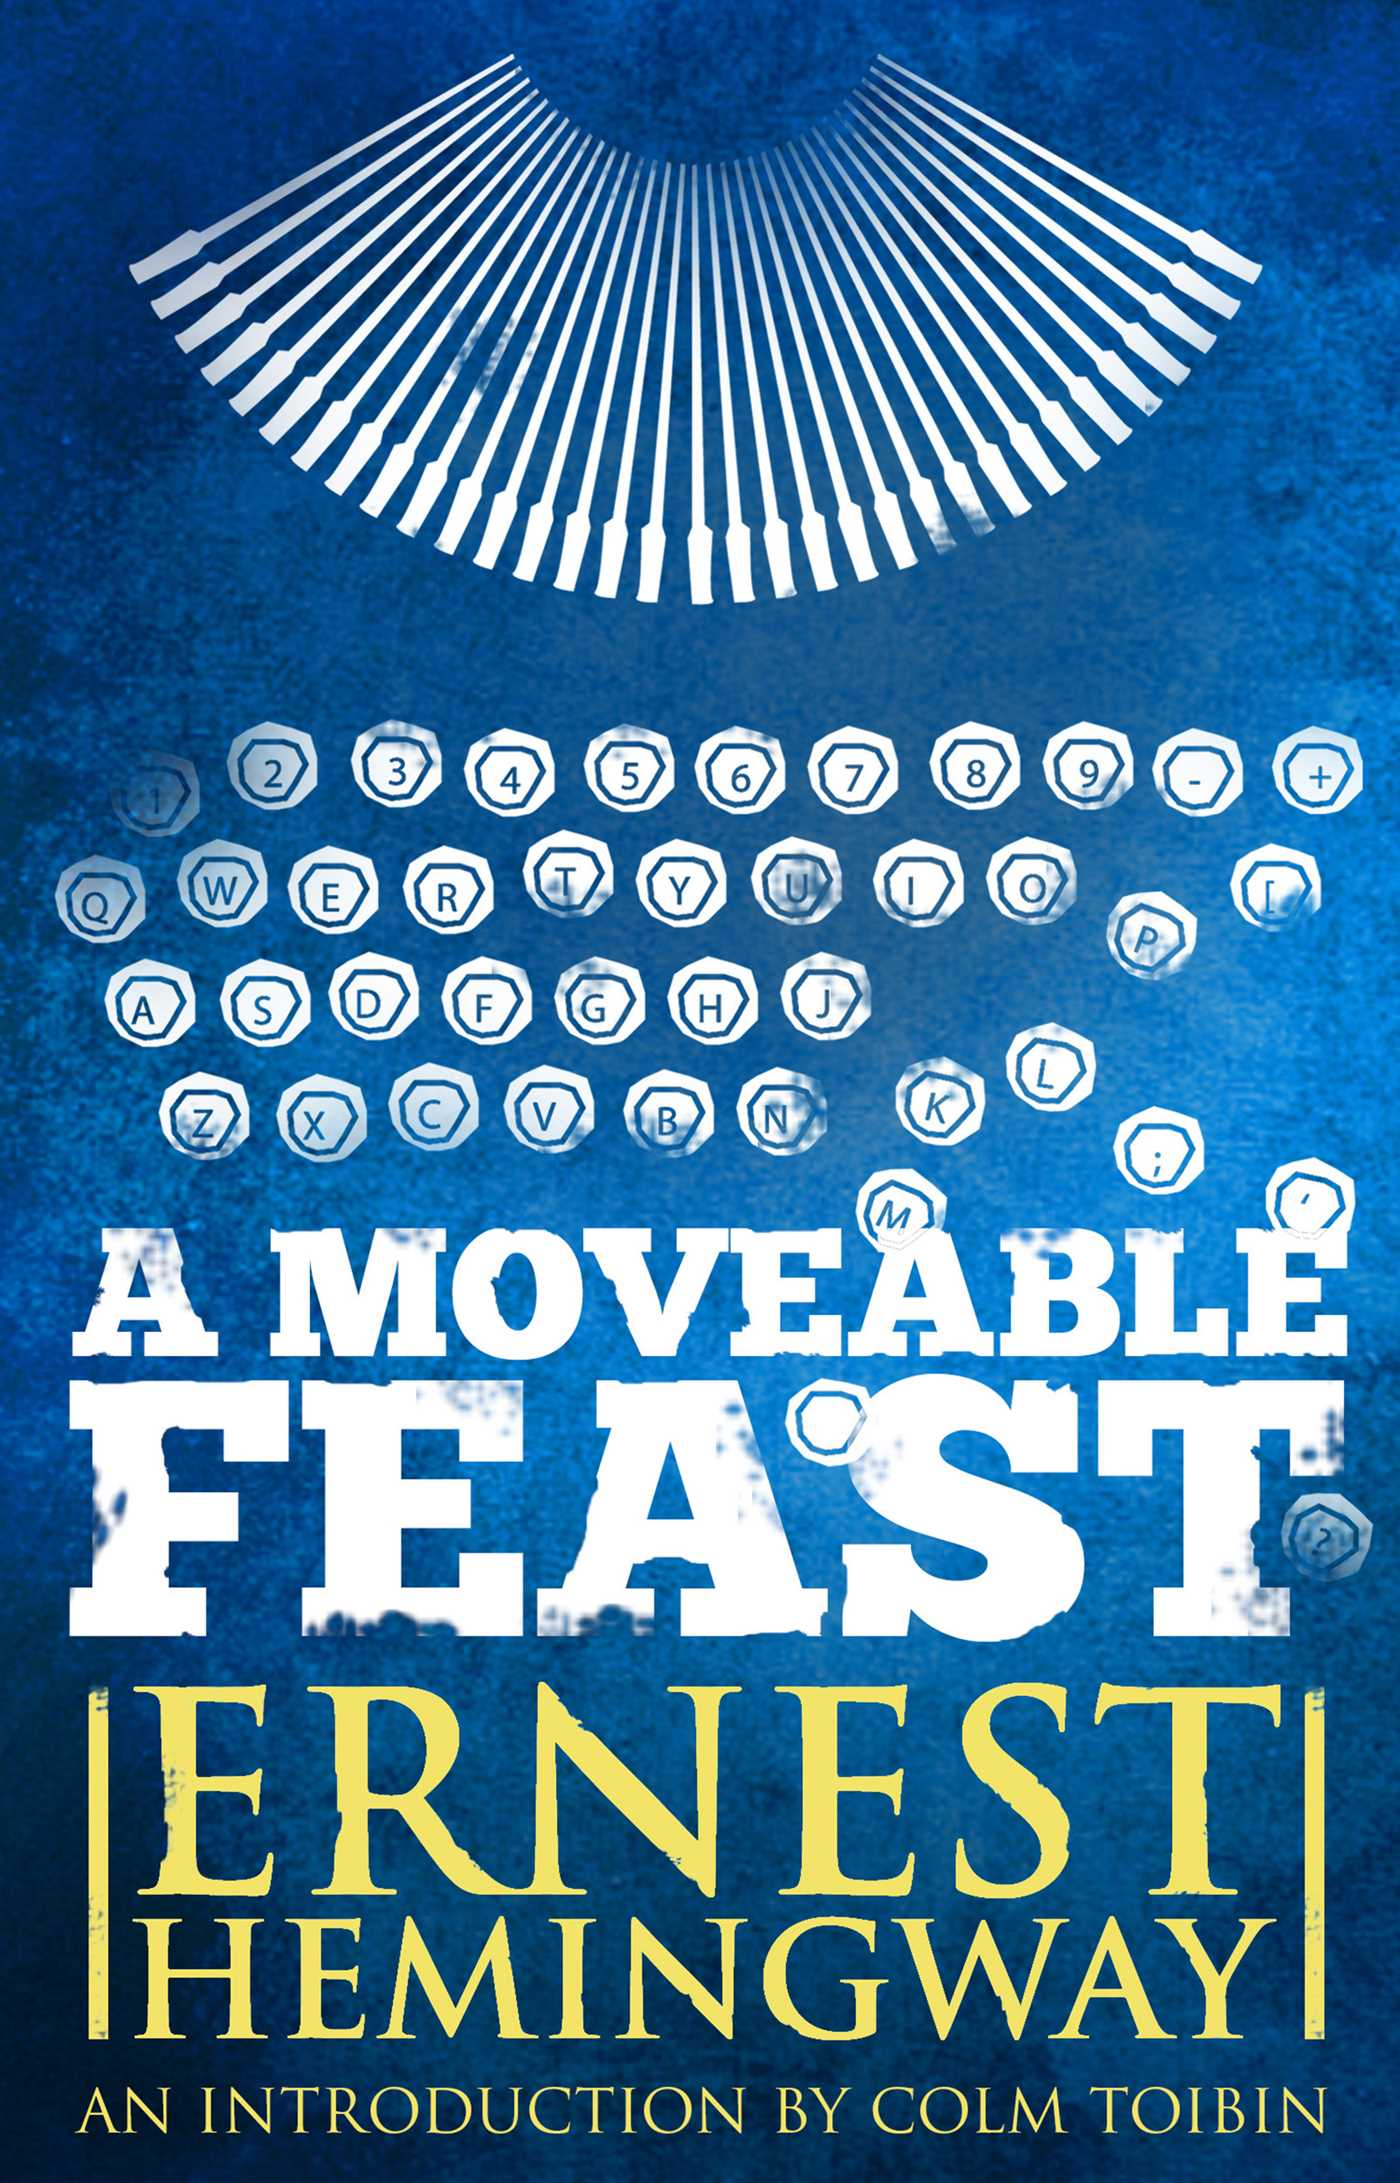 ernest hemingways a moveable feast essay A story of a young hemingway who is impoverished and living in paris, a moveable feast is a novel-cum-memoir of the writer.